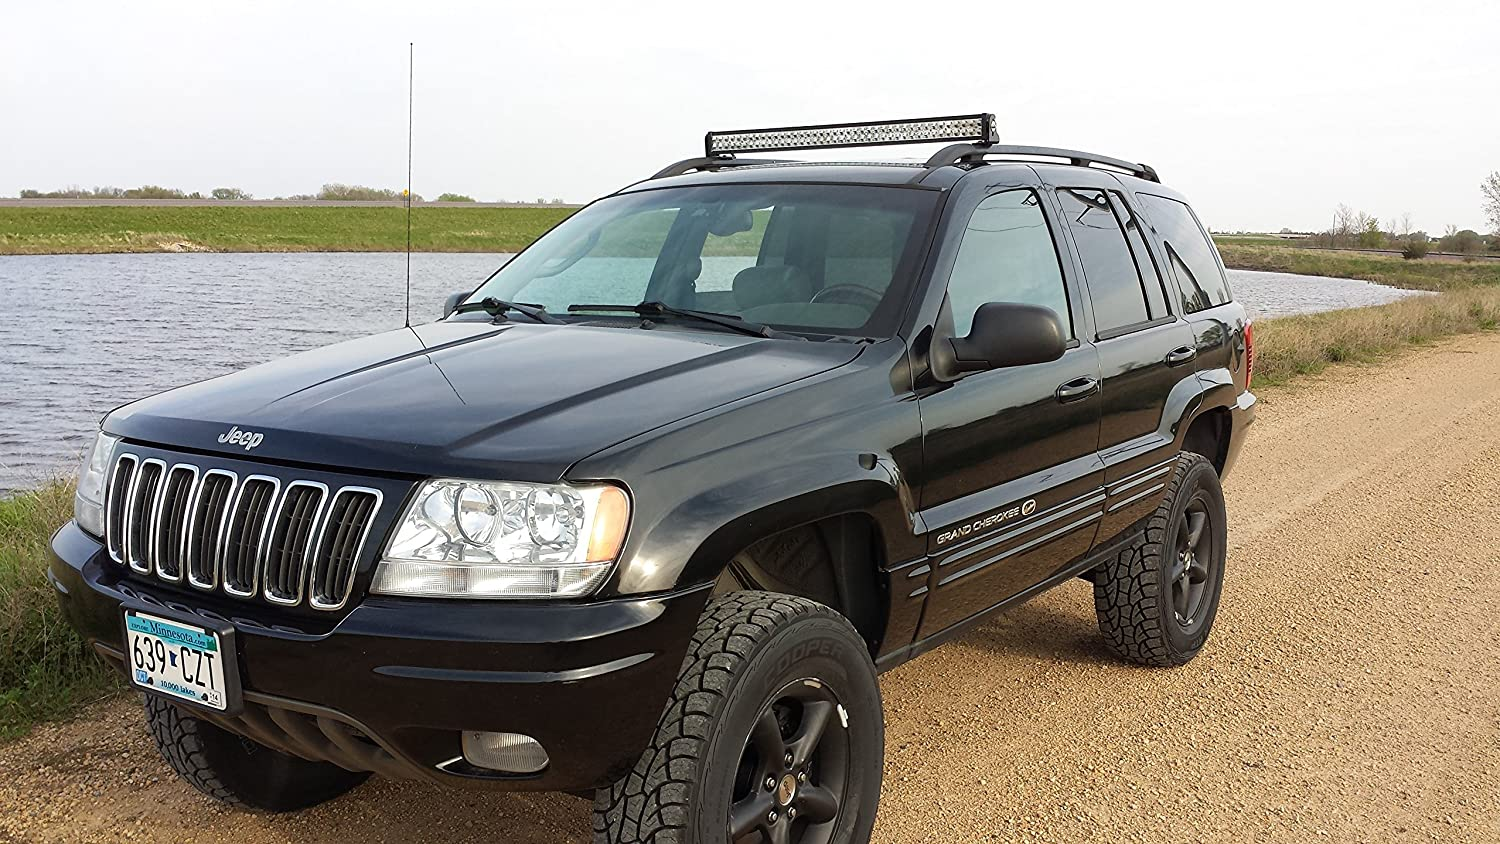 Galerry led light bar mount jeep cherokee